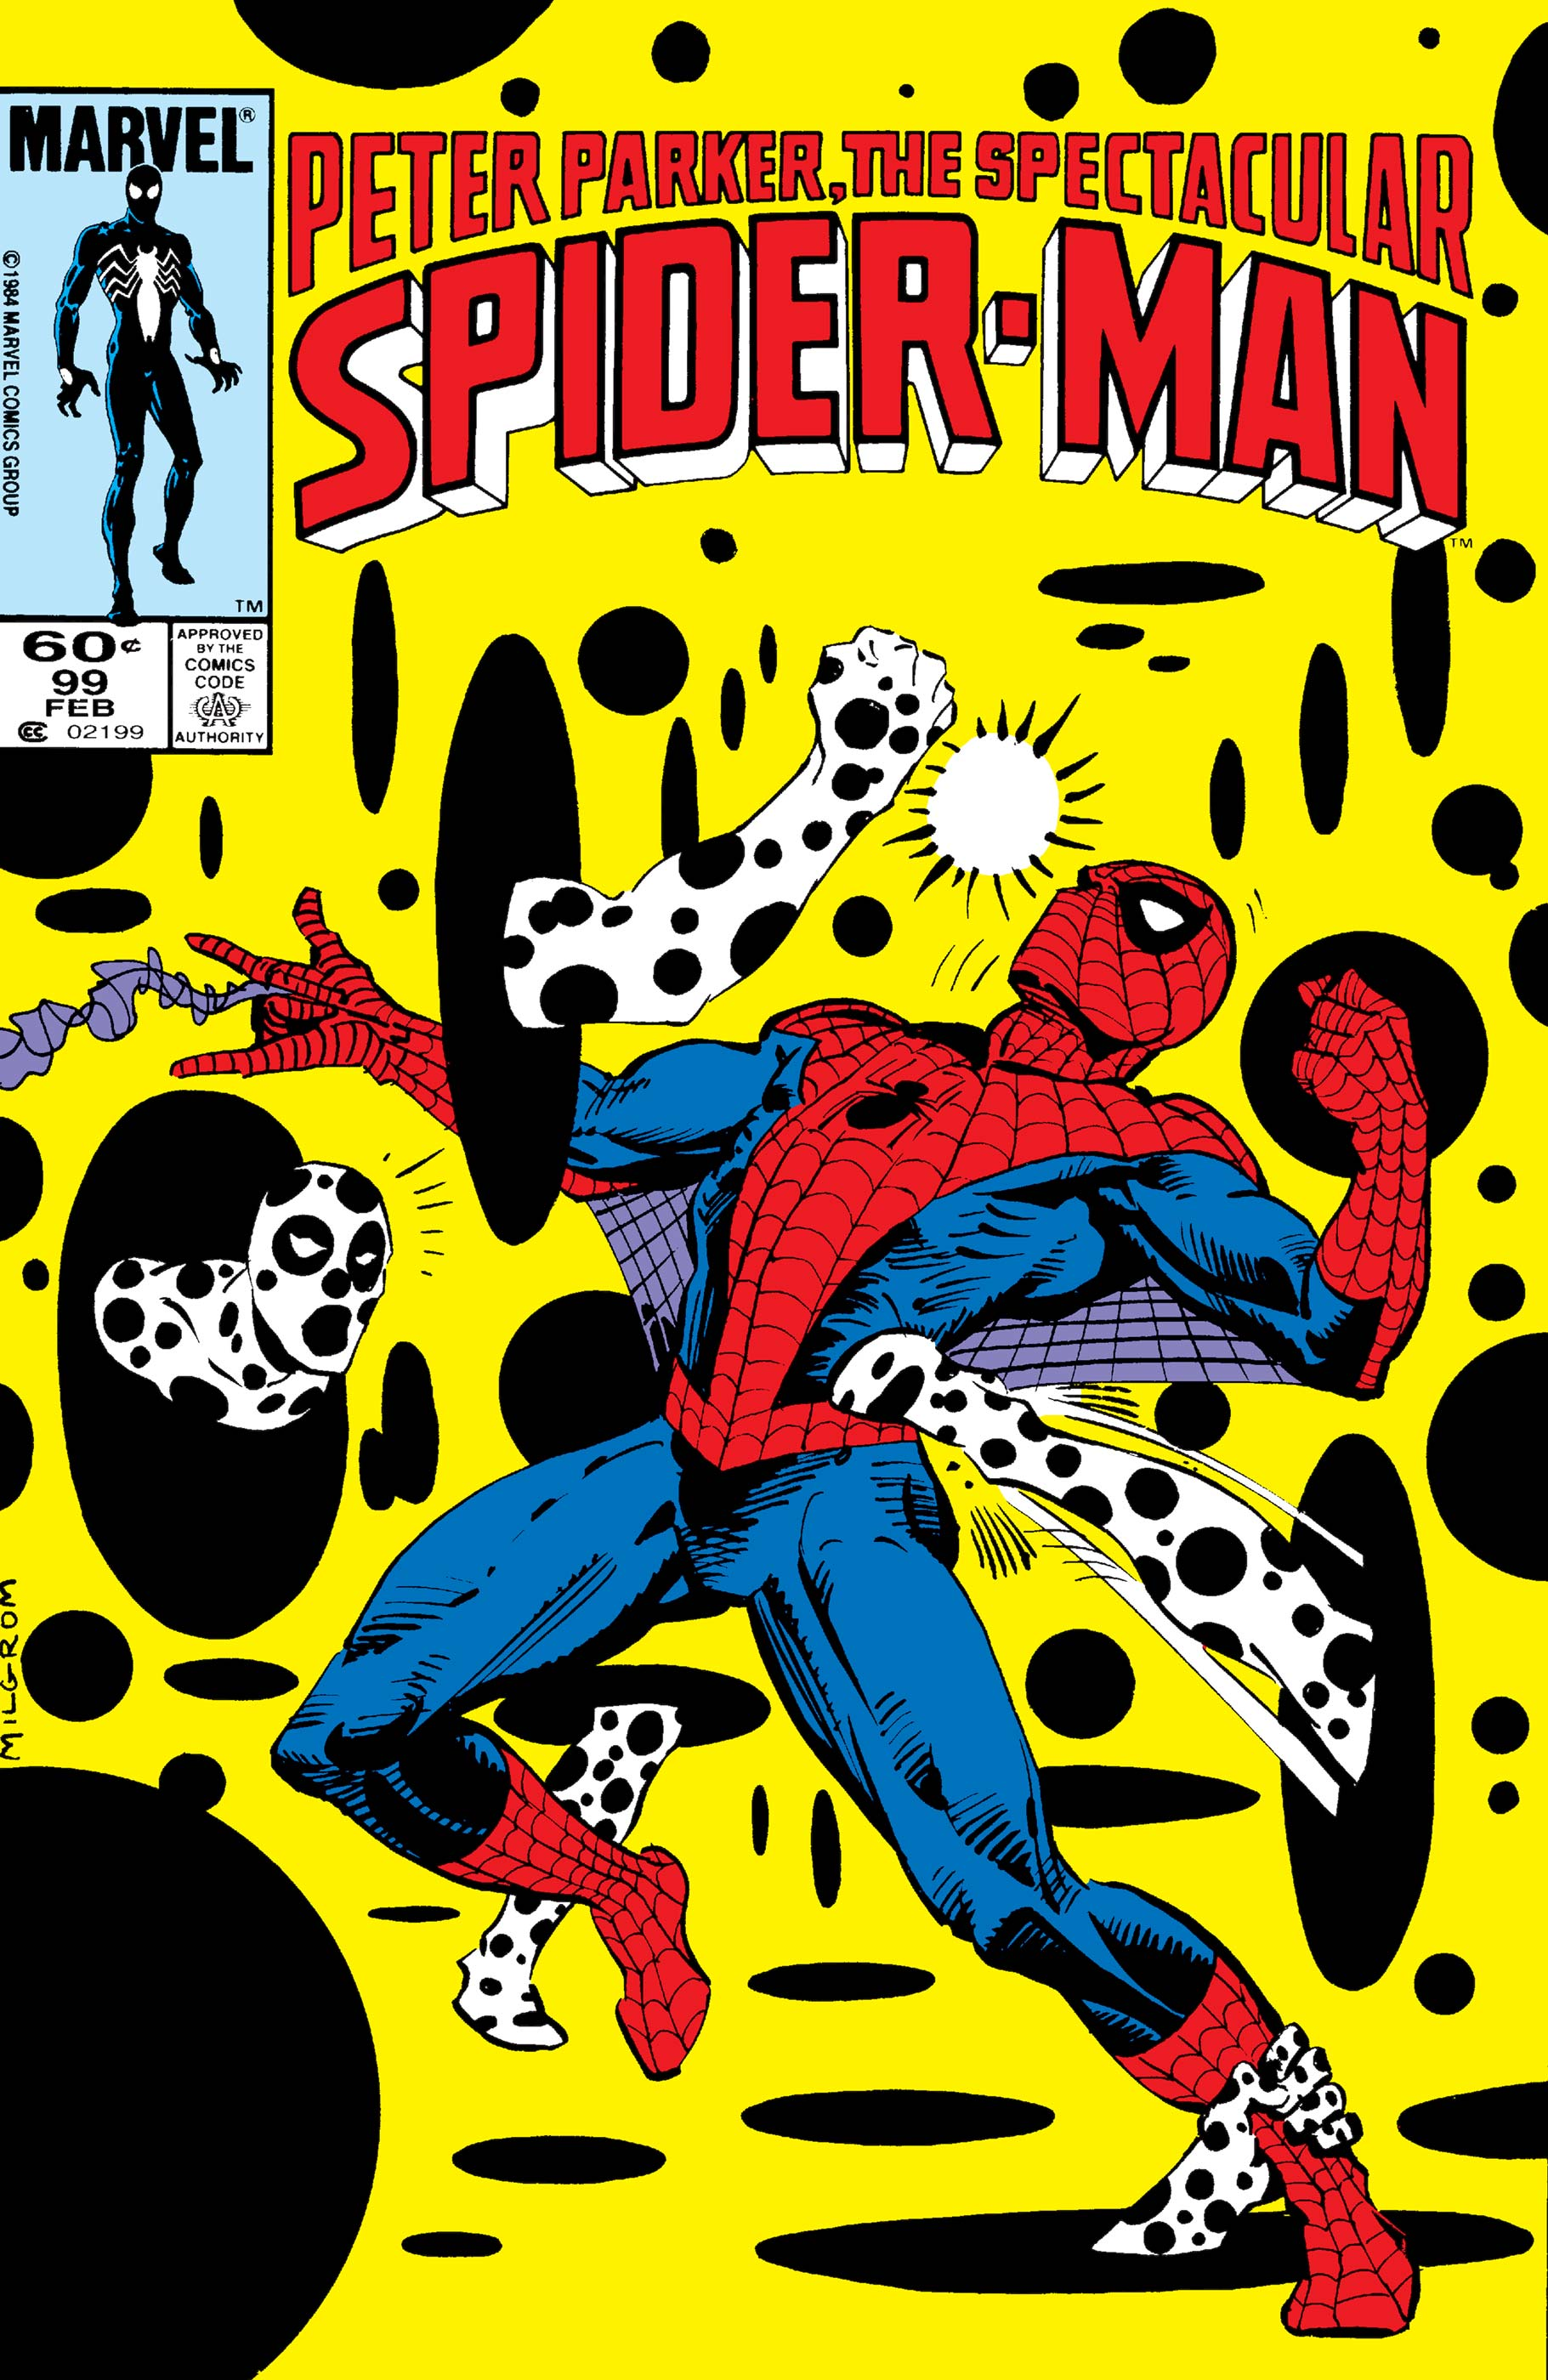 Peter Parker, the Spectacular Spider-Man (1976) #99